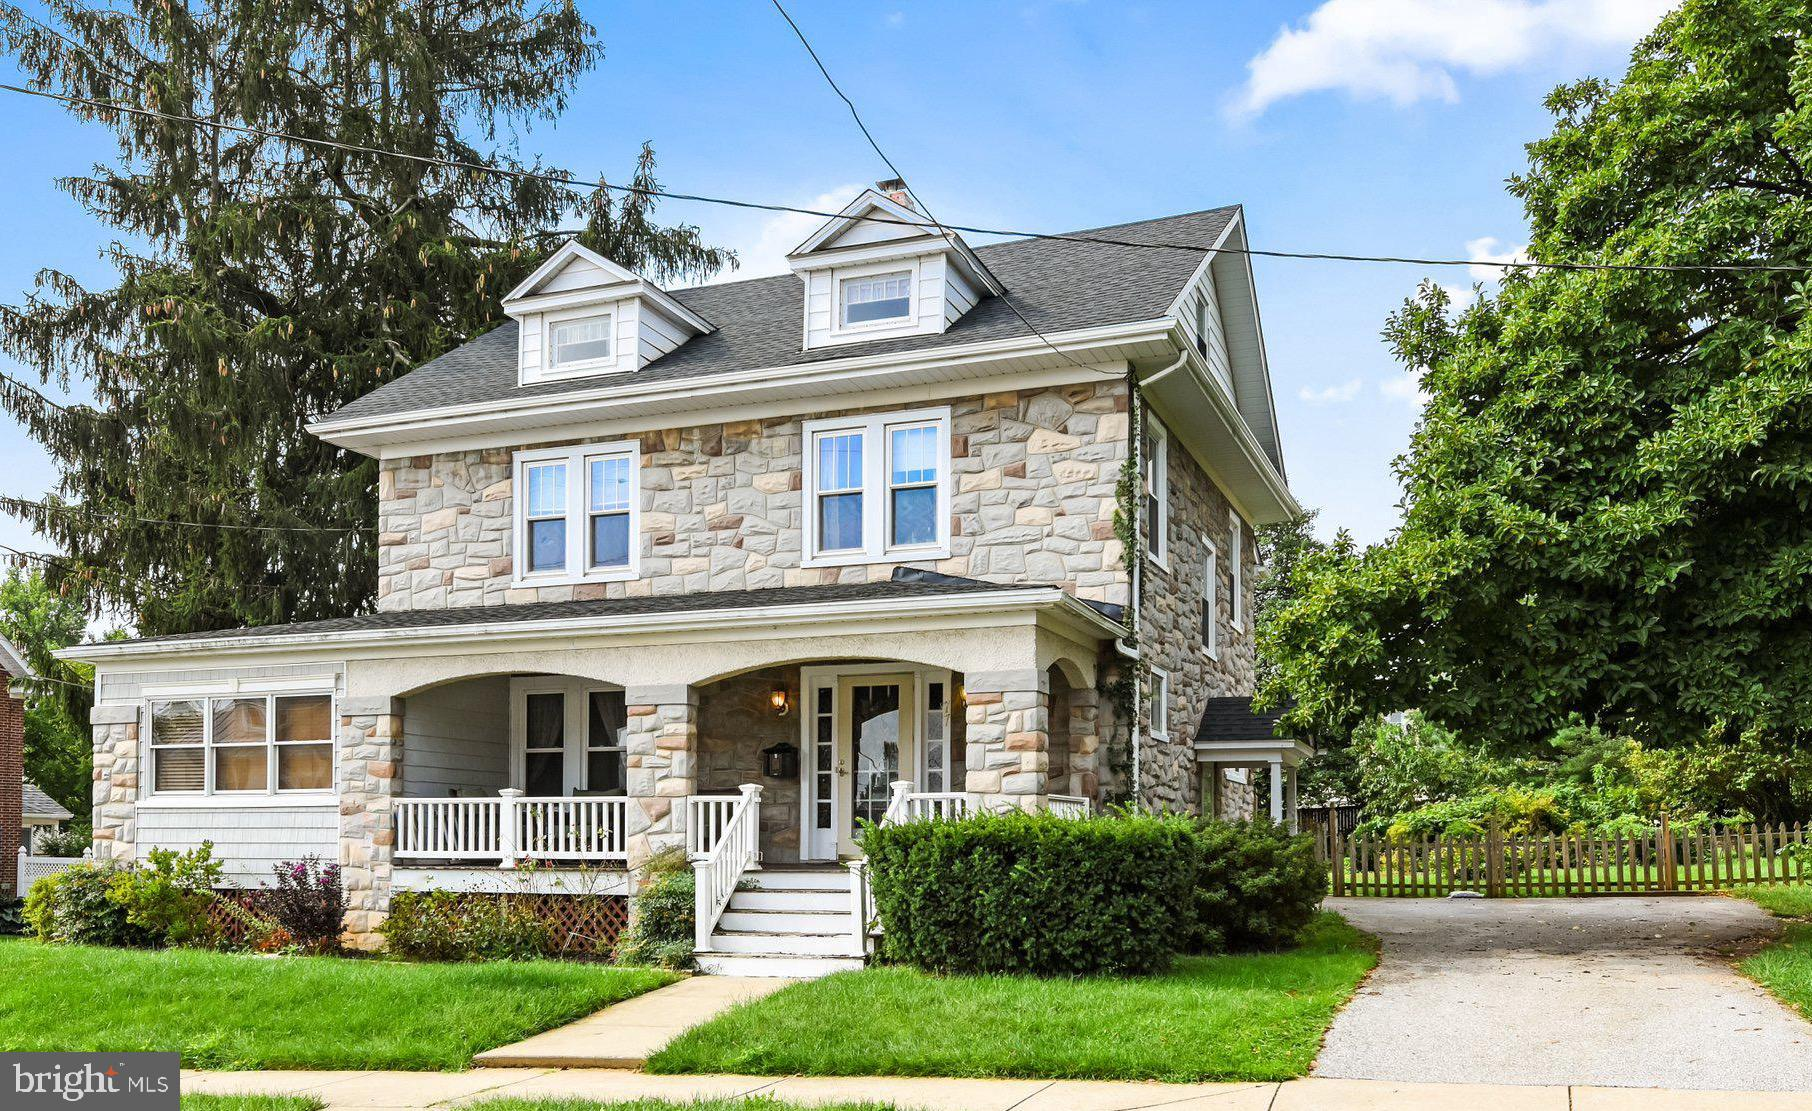 Perfectly perched on a corner lot in the coveted area of Downtown Westminster. This ALL STONE 4 bedr